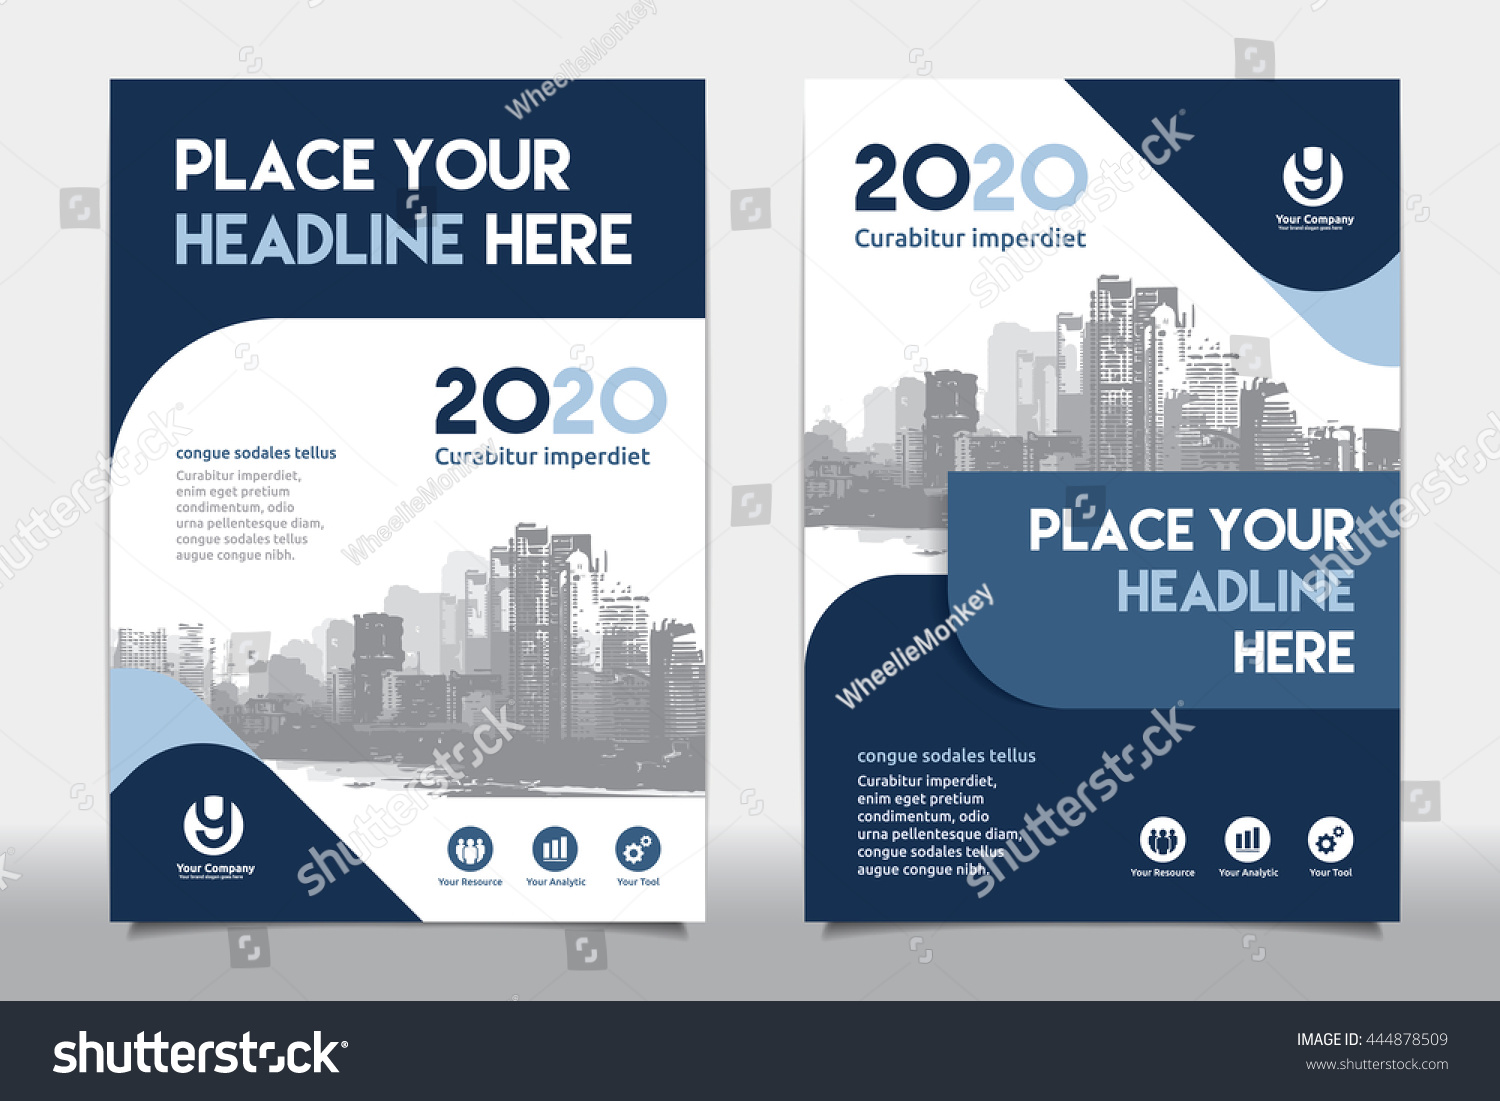 Book Cover Design Sites : Blue color scheme city background business stock vector